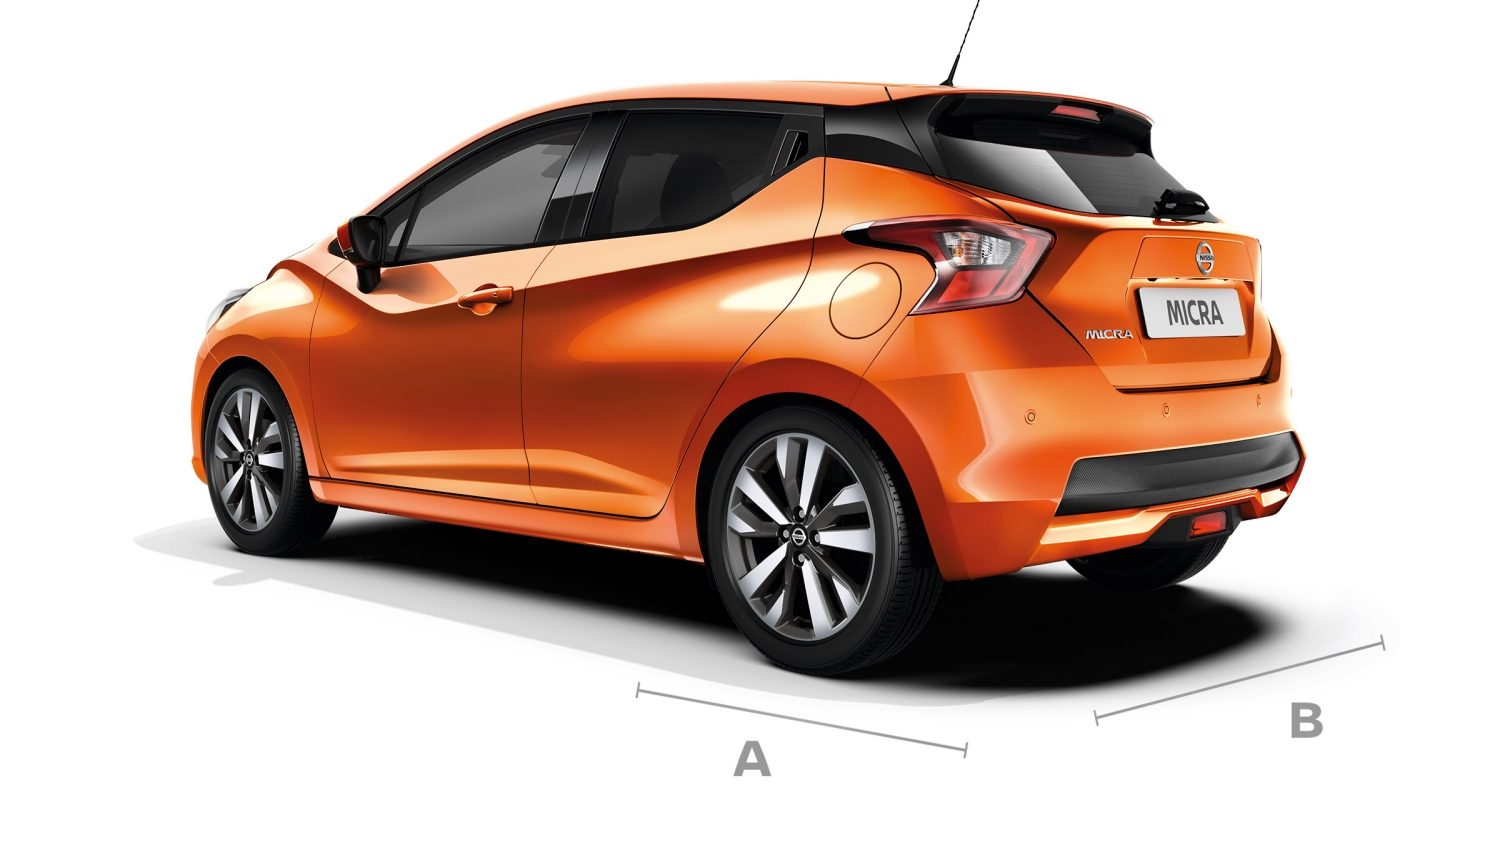 Technical Information New Nissan Micra Specifications Fuse Box Location Dimensions